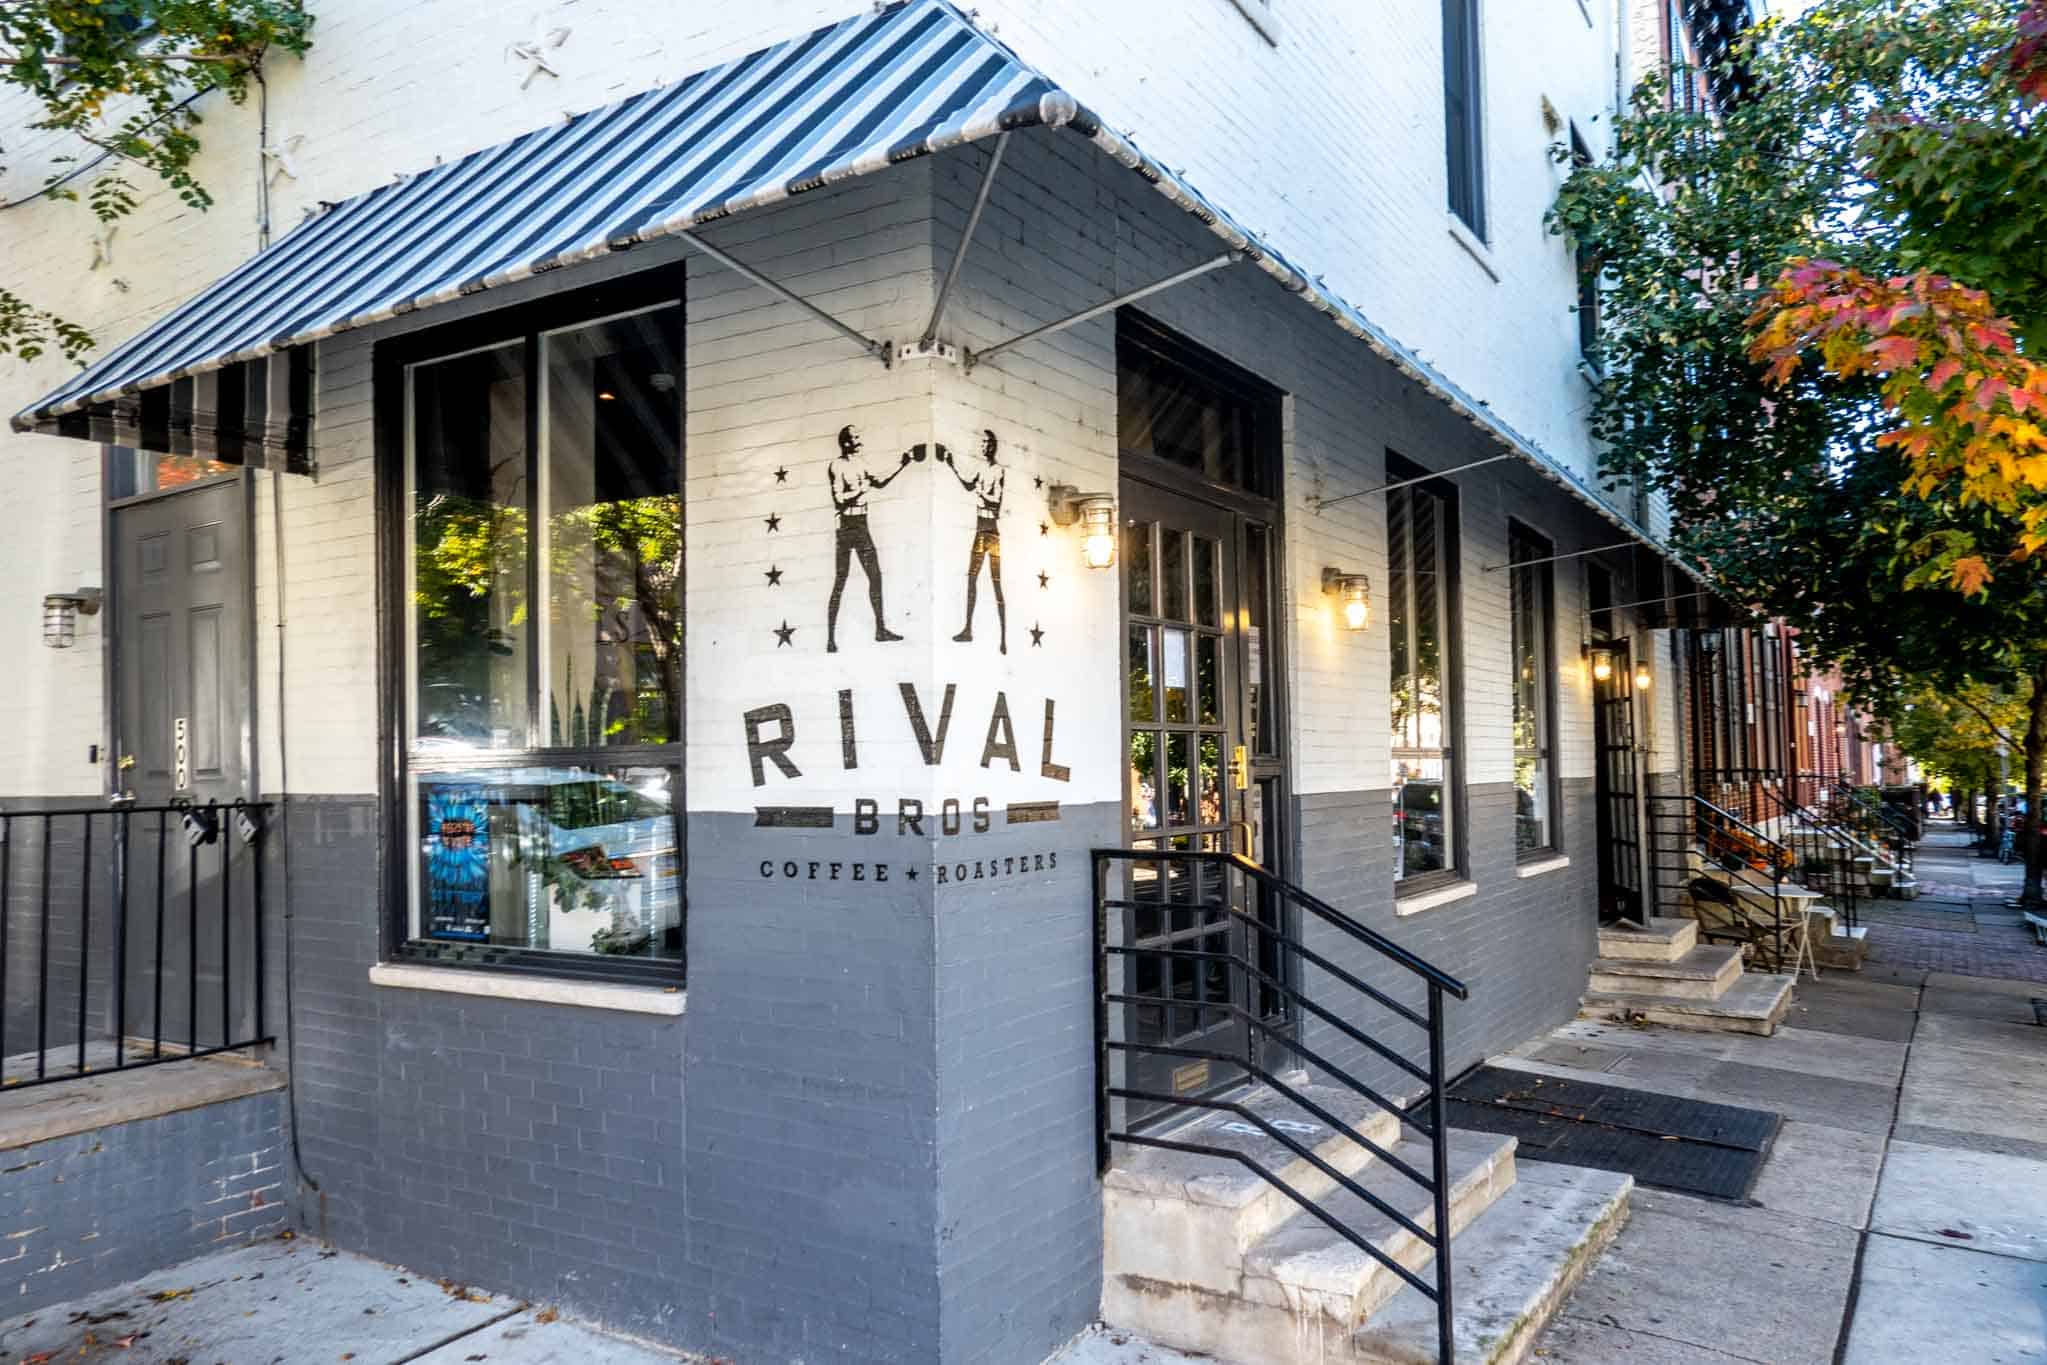 """Exterior of a brick building with a sign for """"Rival Bros Coffee Roasters"""""""